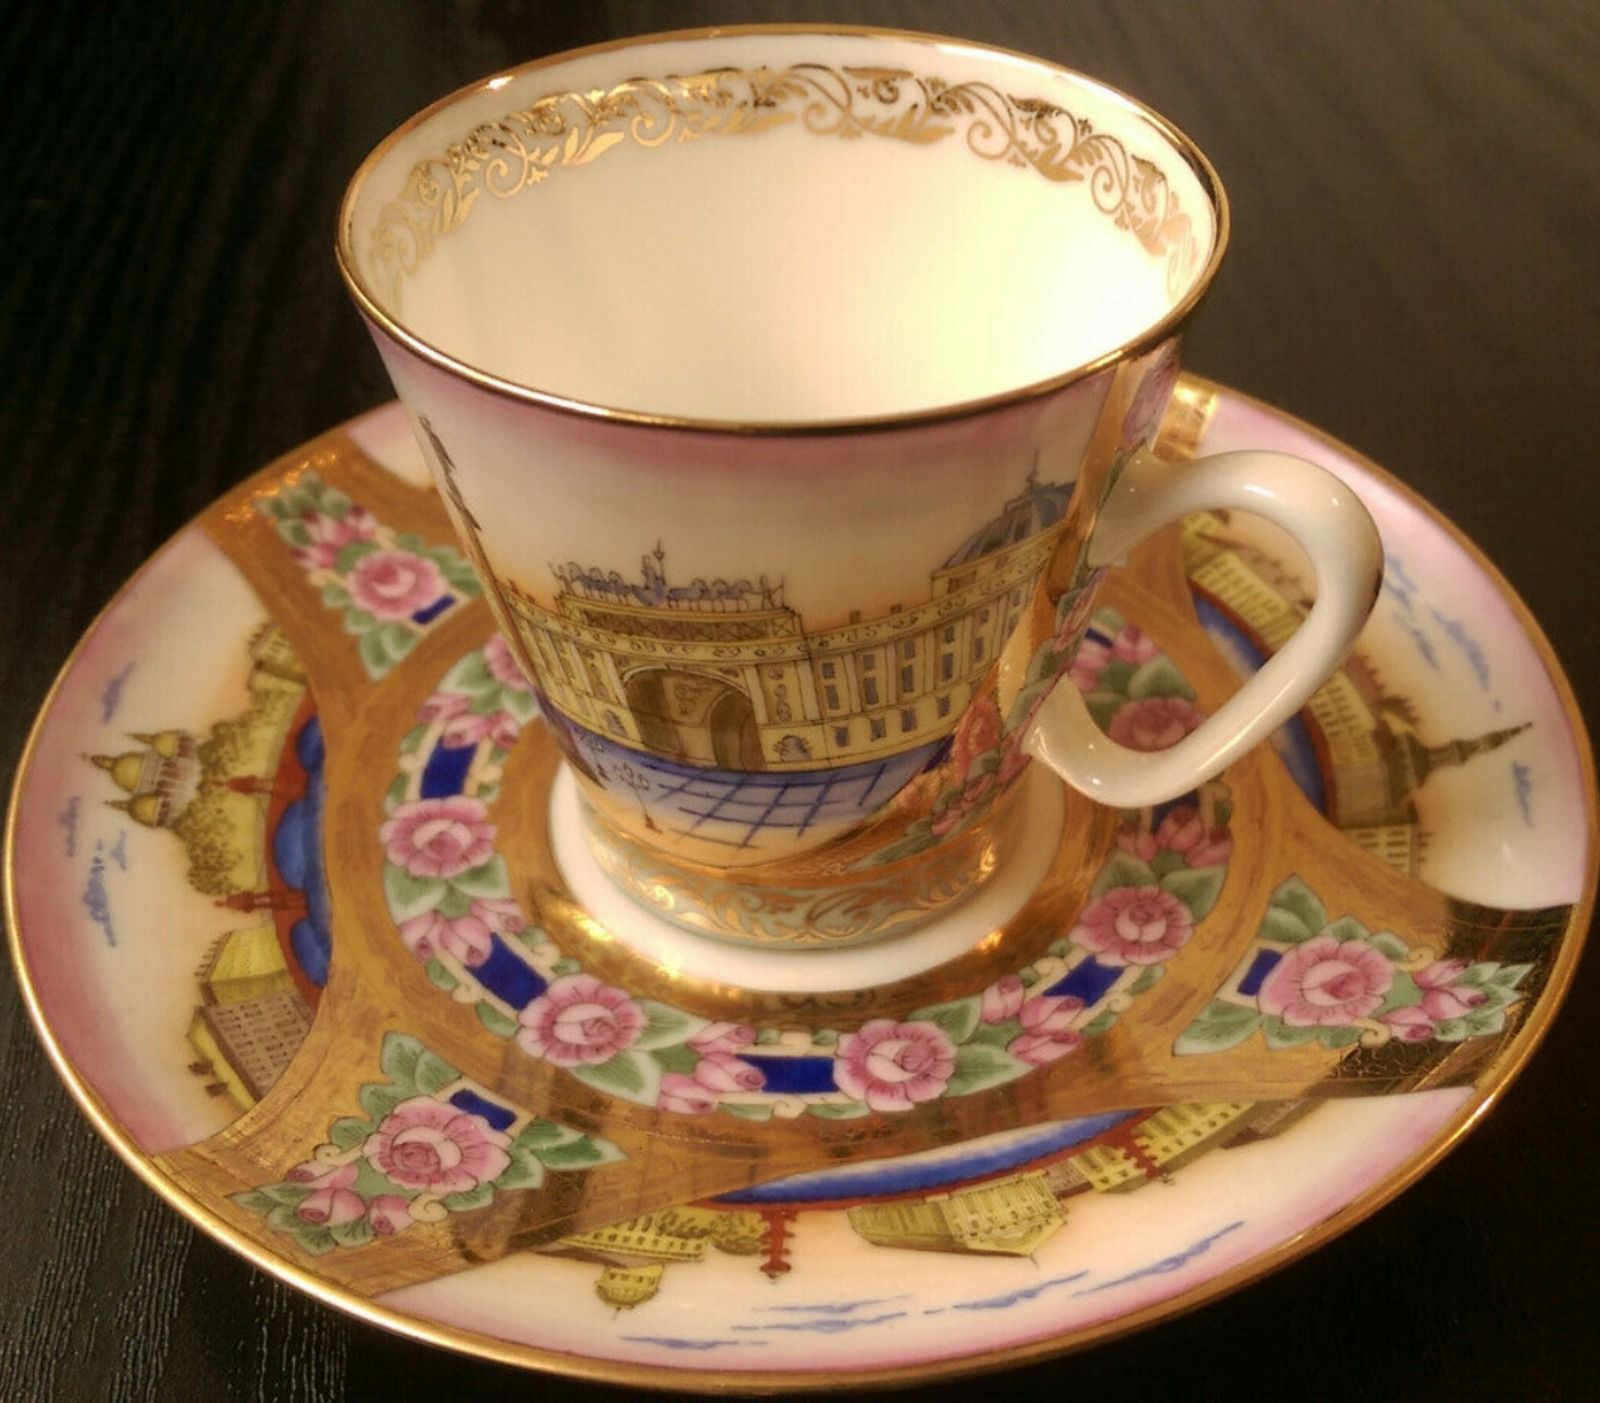 Unique Collectable Imperial Lomonosov Cup And Saucer Hand Painted Real Gold Ebay In 2020 Tea Cups Saucer Cup And Saucer